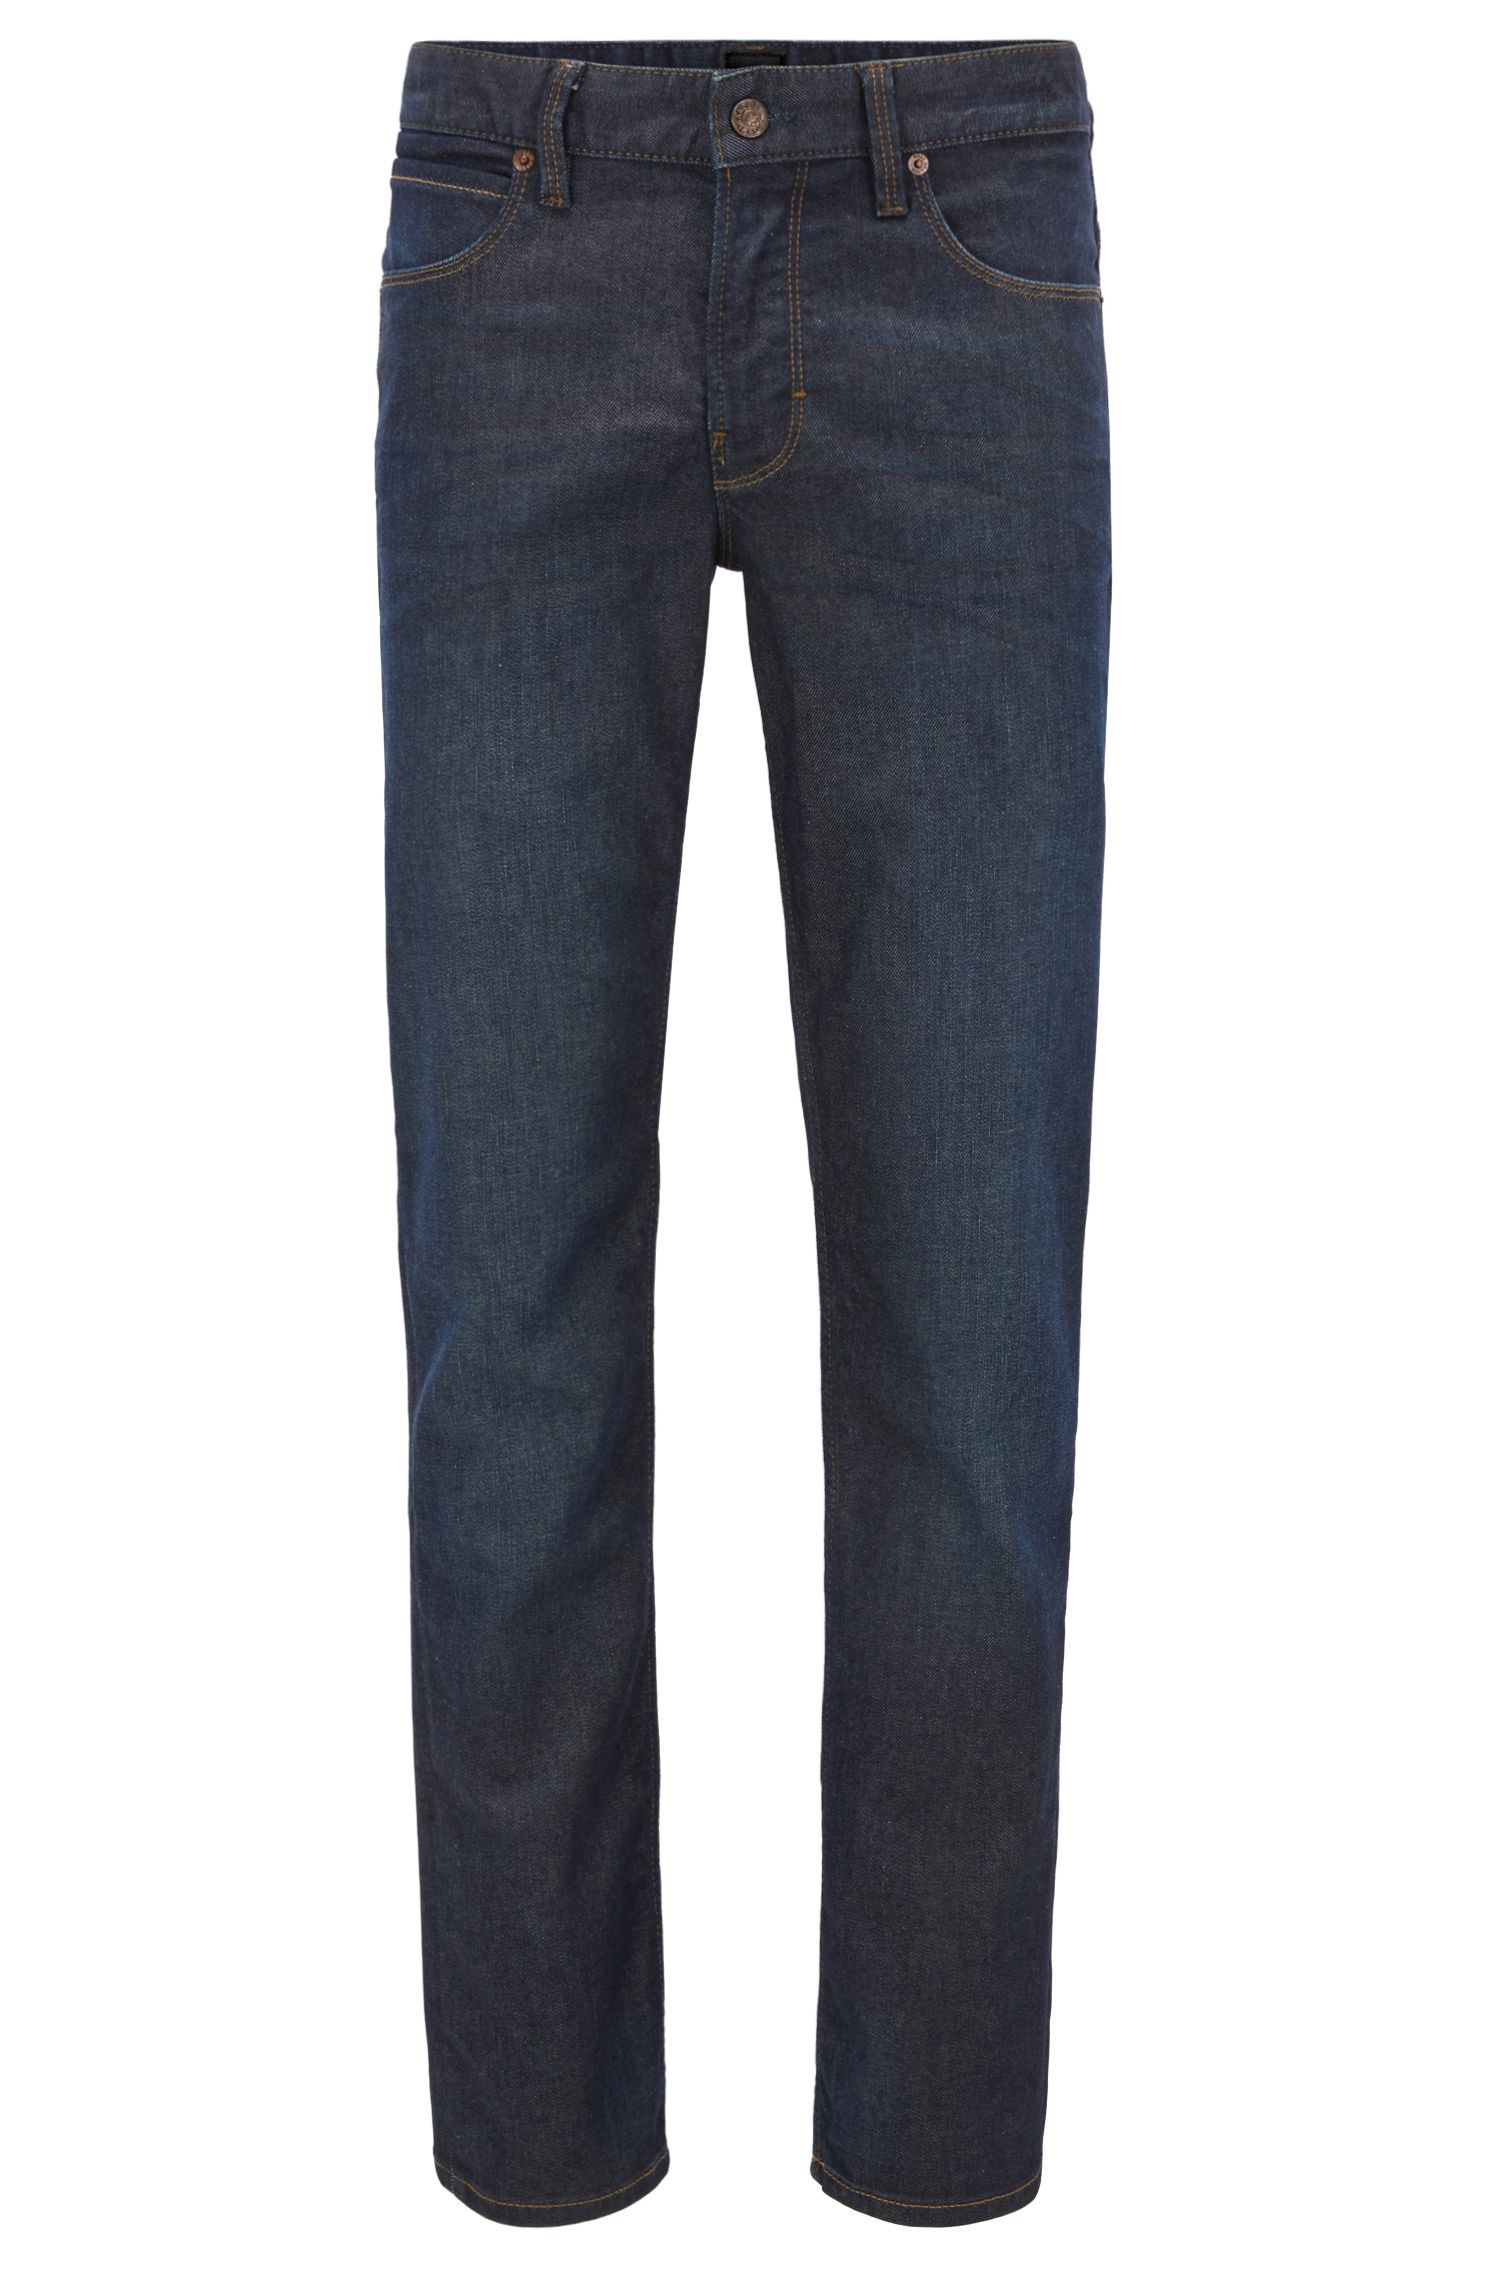 Jeans Slim Fit en denim indigo stretch